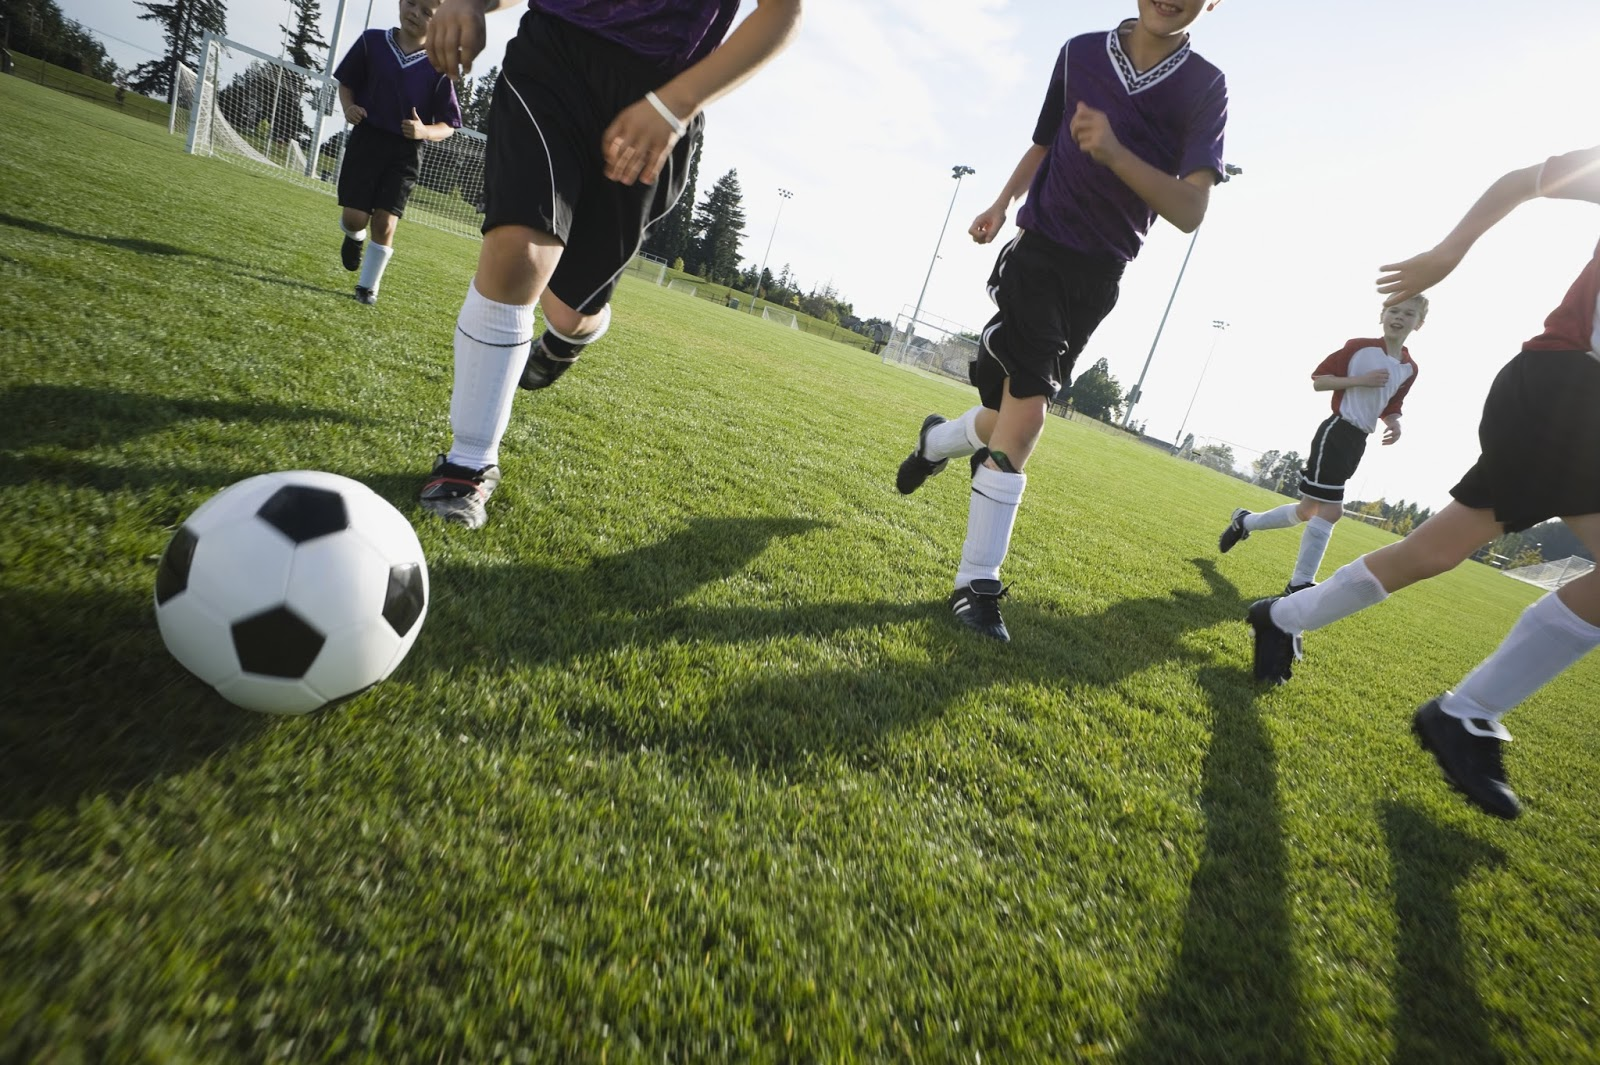 Boys playing competitive soccer